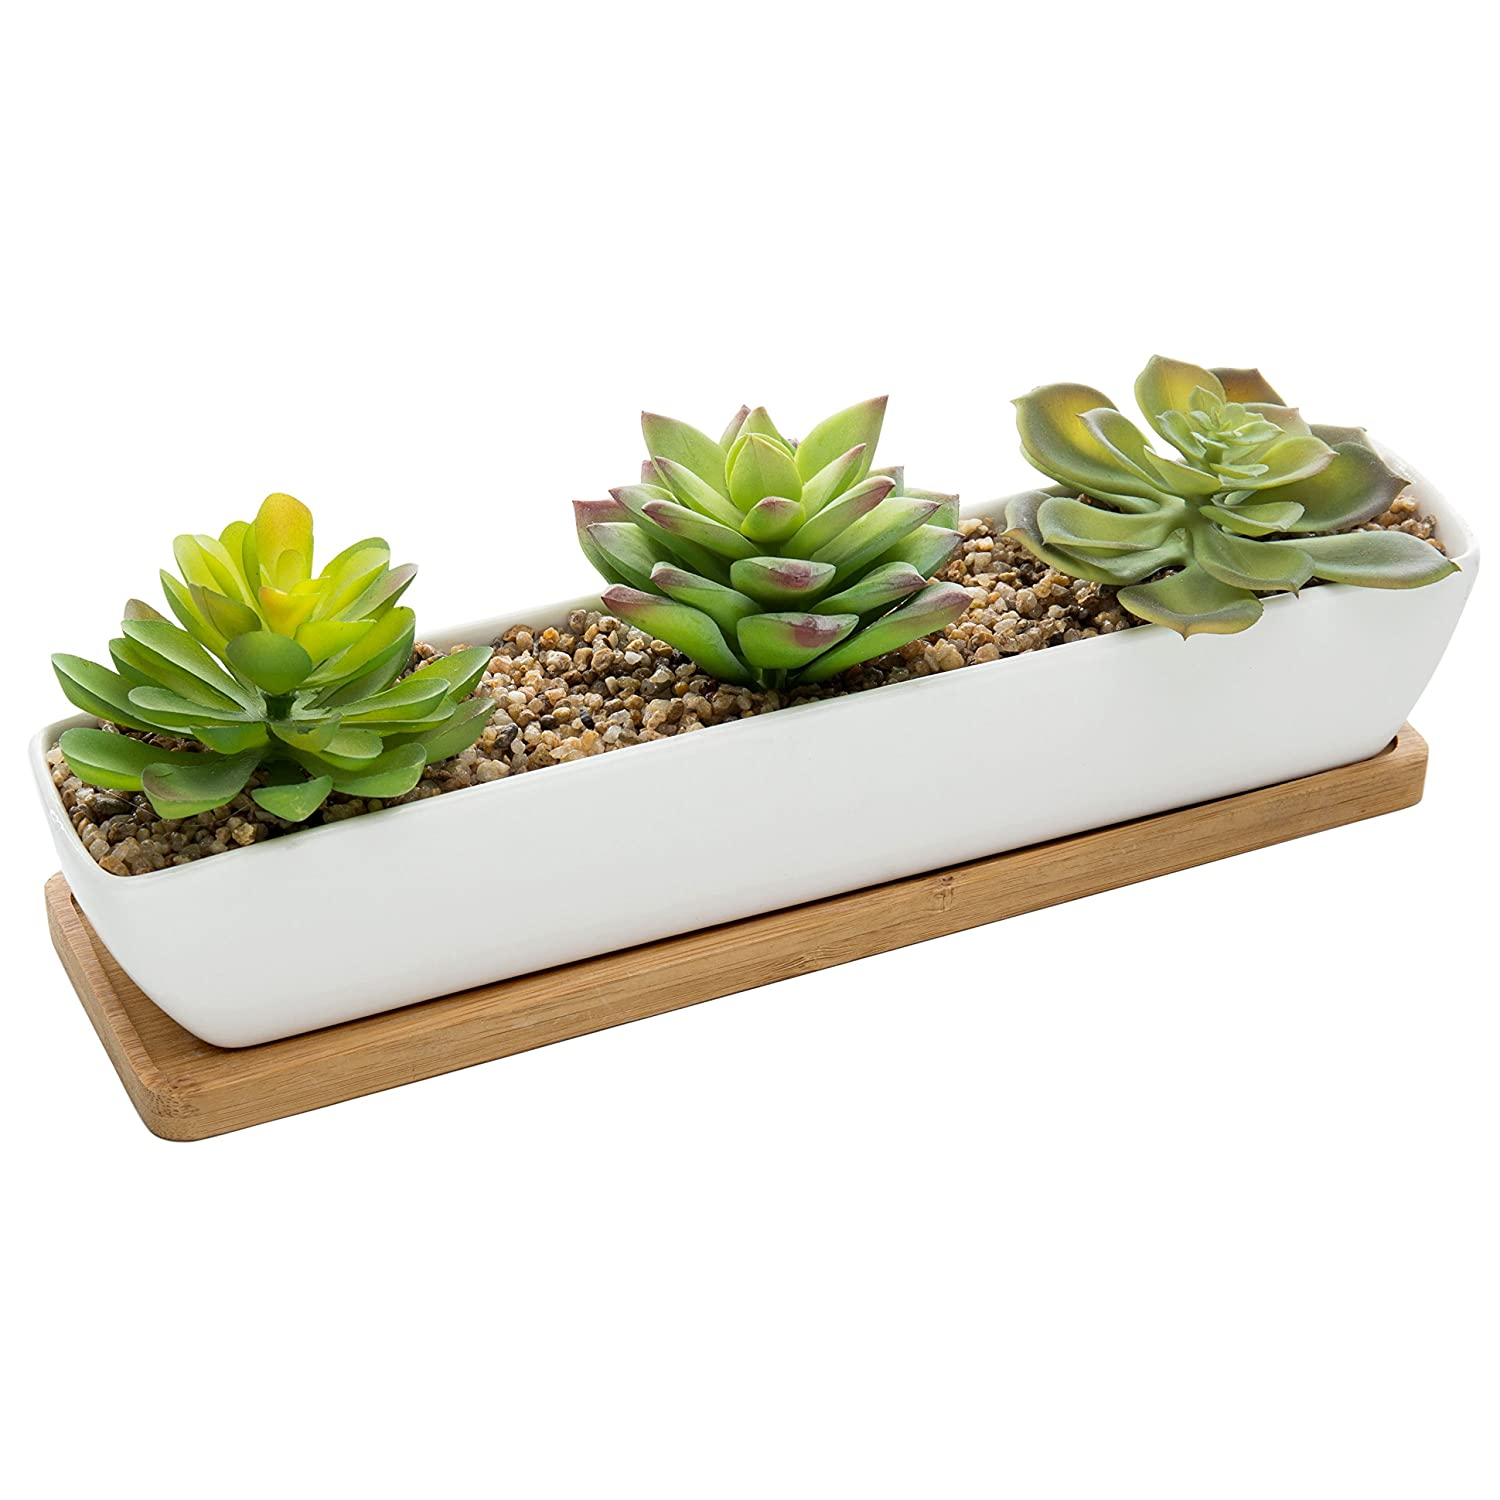 MyGift Artificial Succulent Arrangement in 11-Inch Ceramic Planter with Bamboo Tray